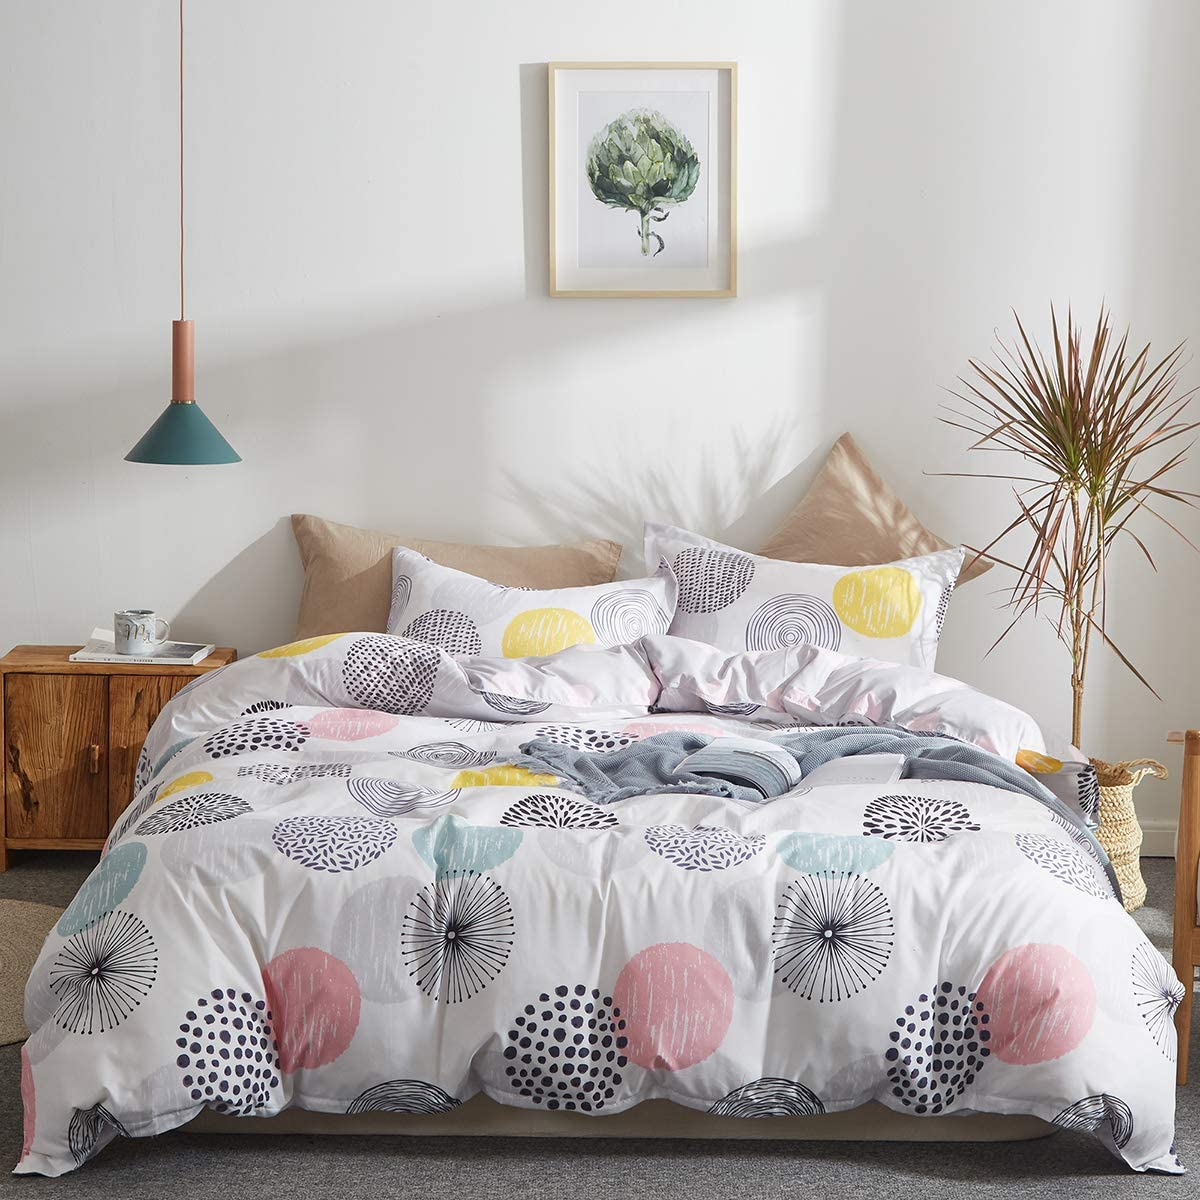 Uozzi Bedding Colorful Dots Comforter Set Queen Size Pink Yellow Gray Blue  Circles Print Reversible Down Alternative 800 TC Adult Duvet Sets 1 ...